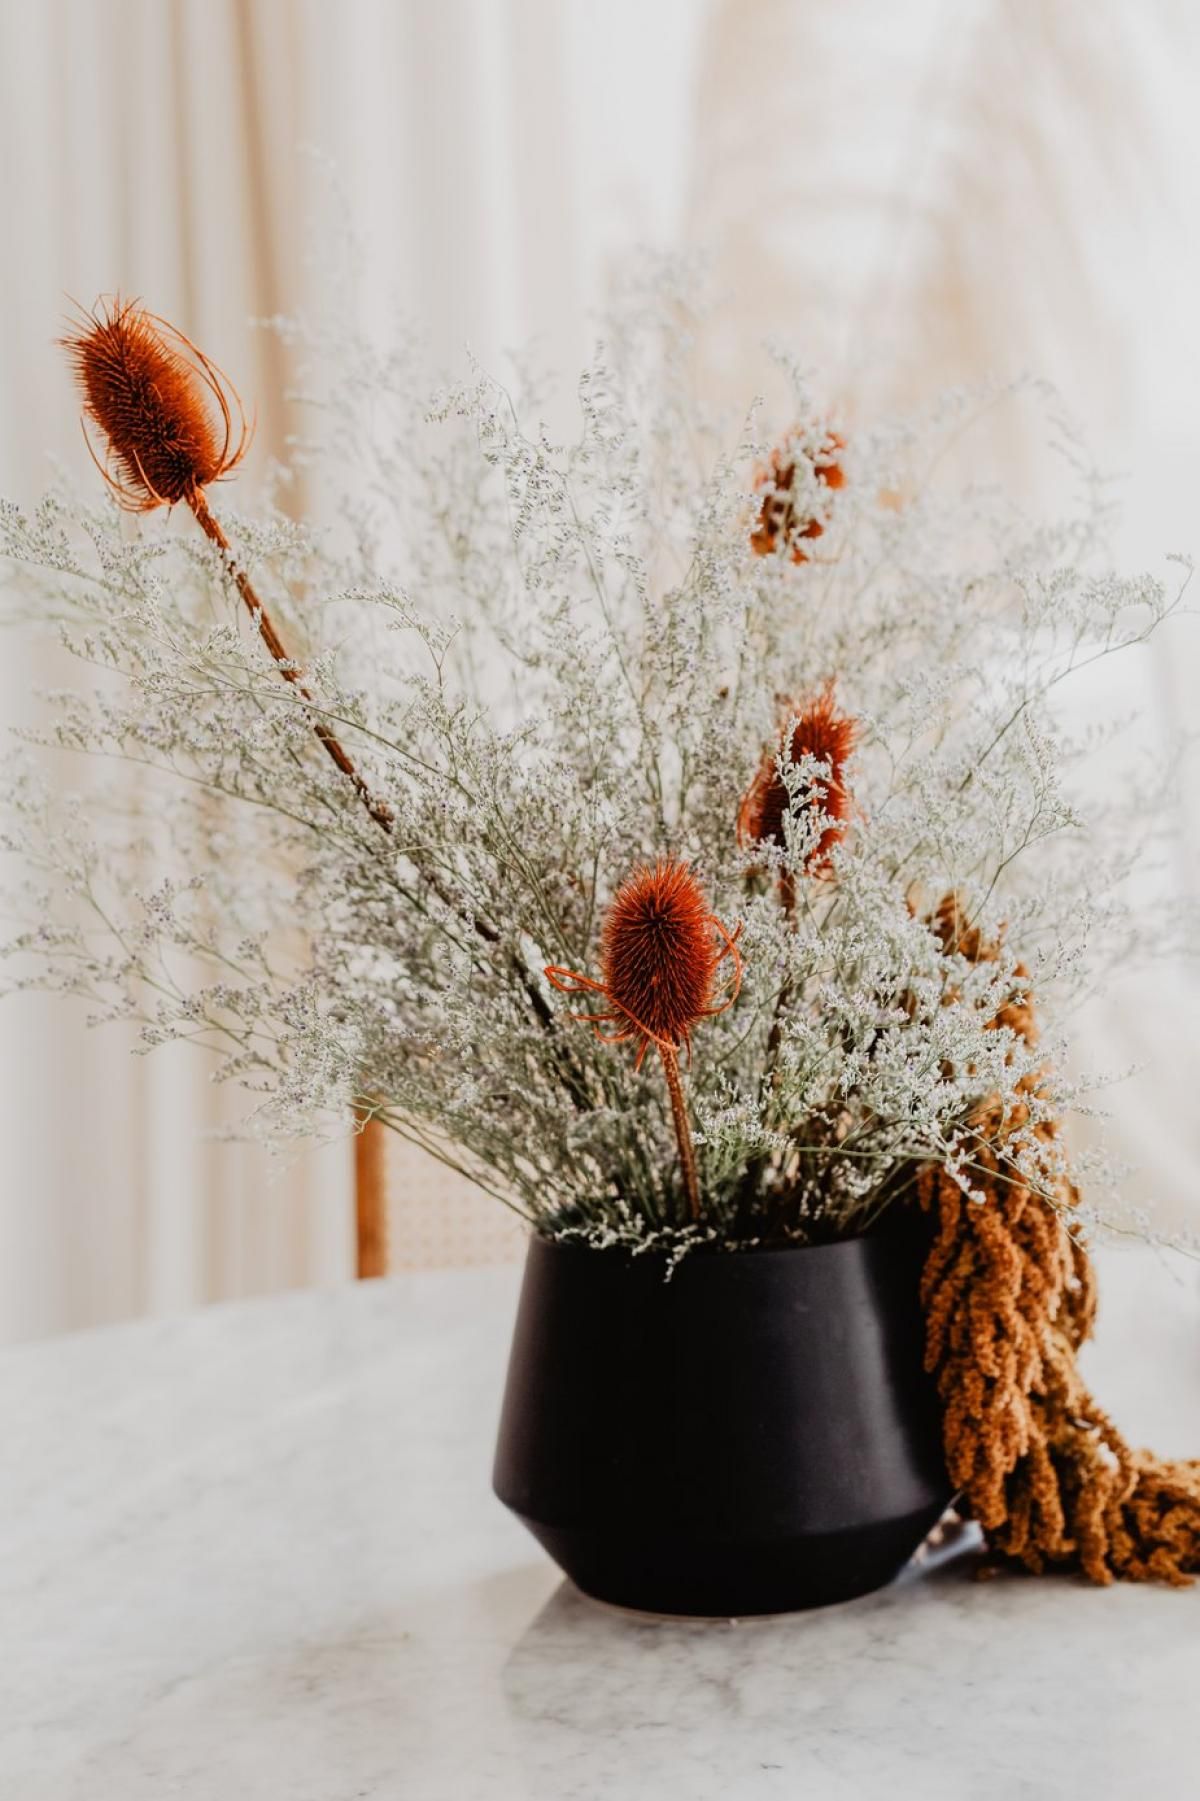 Fall Flowers On Table #422625